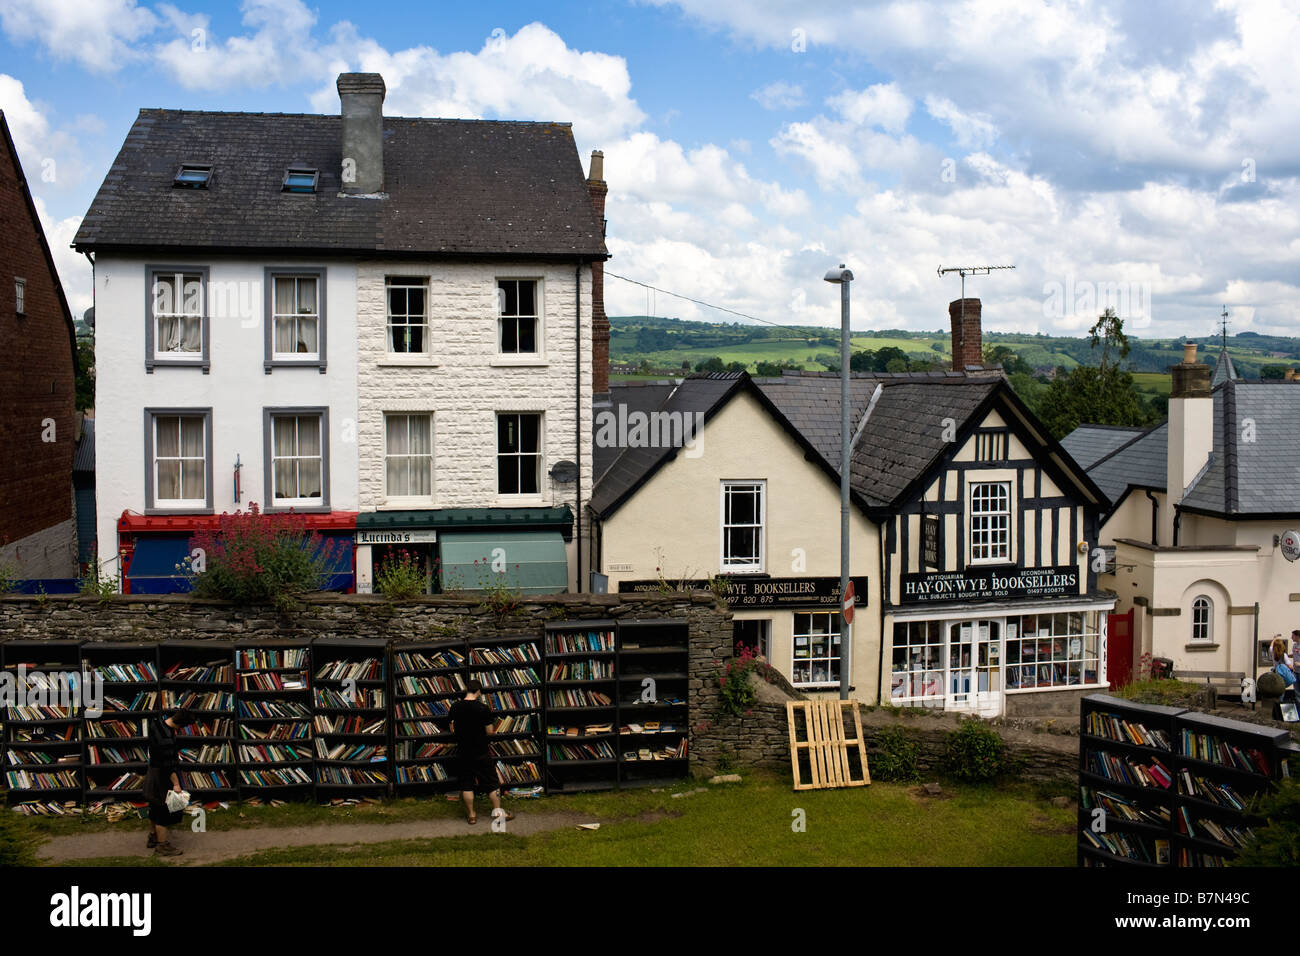 Hay on Wye with some of the books on sale in the castle grounds. - Stock Image